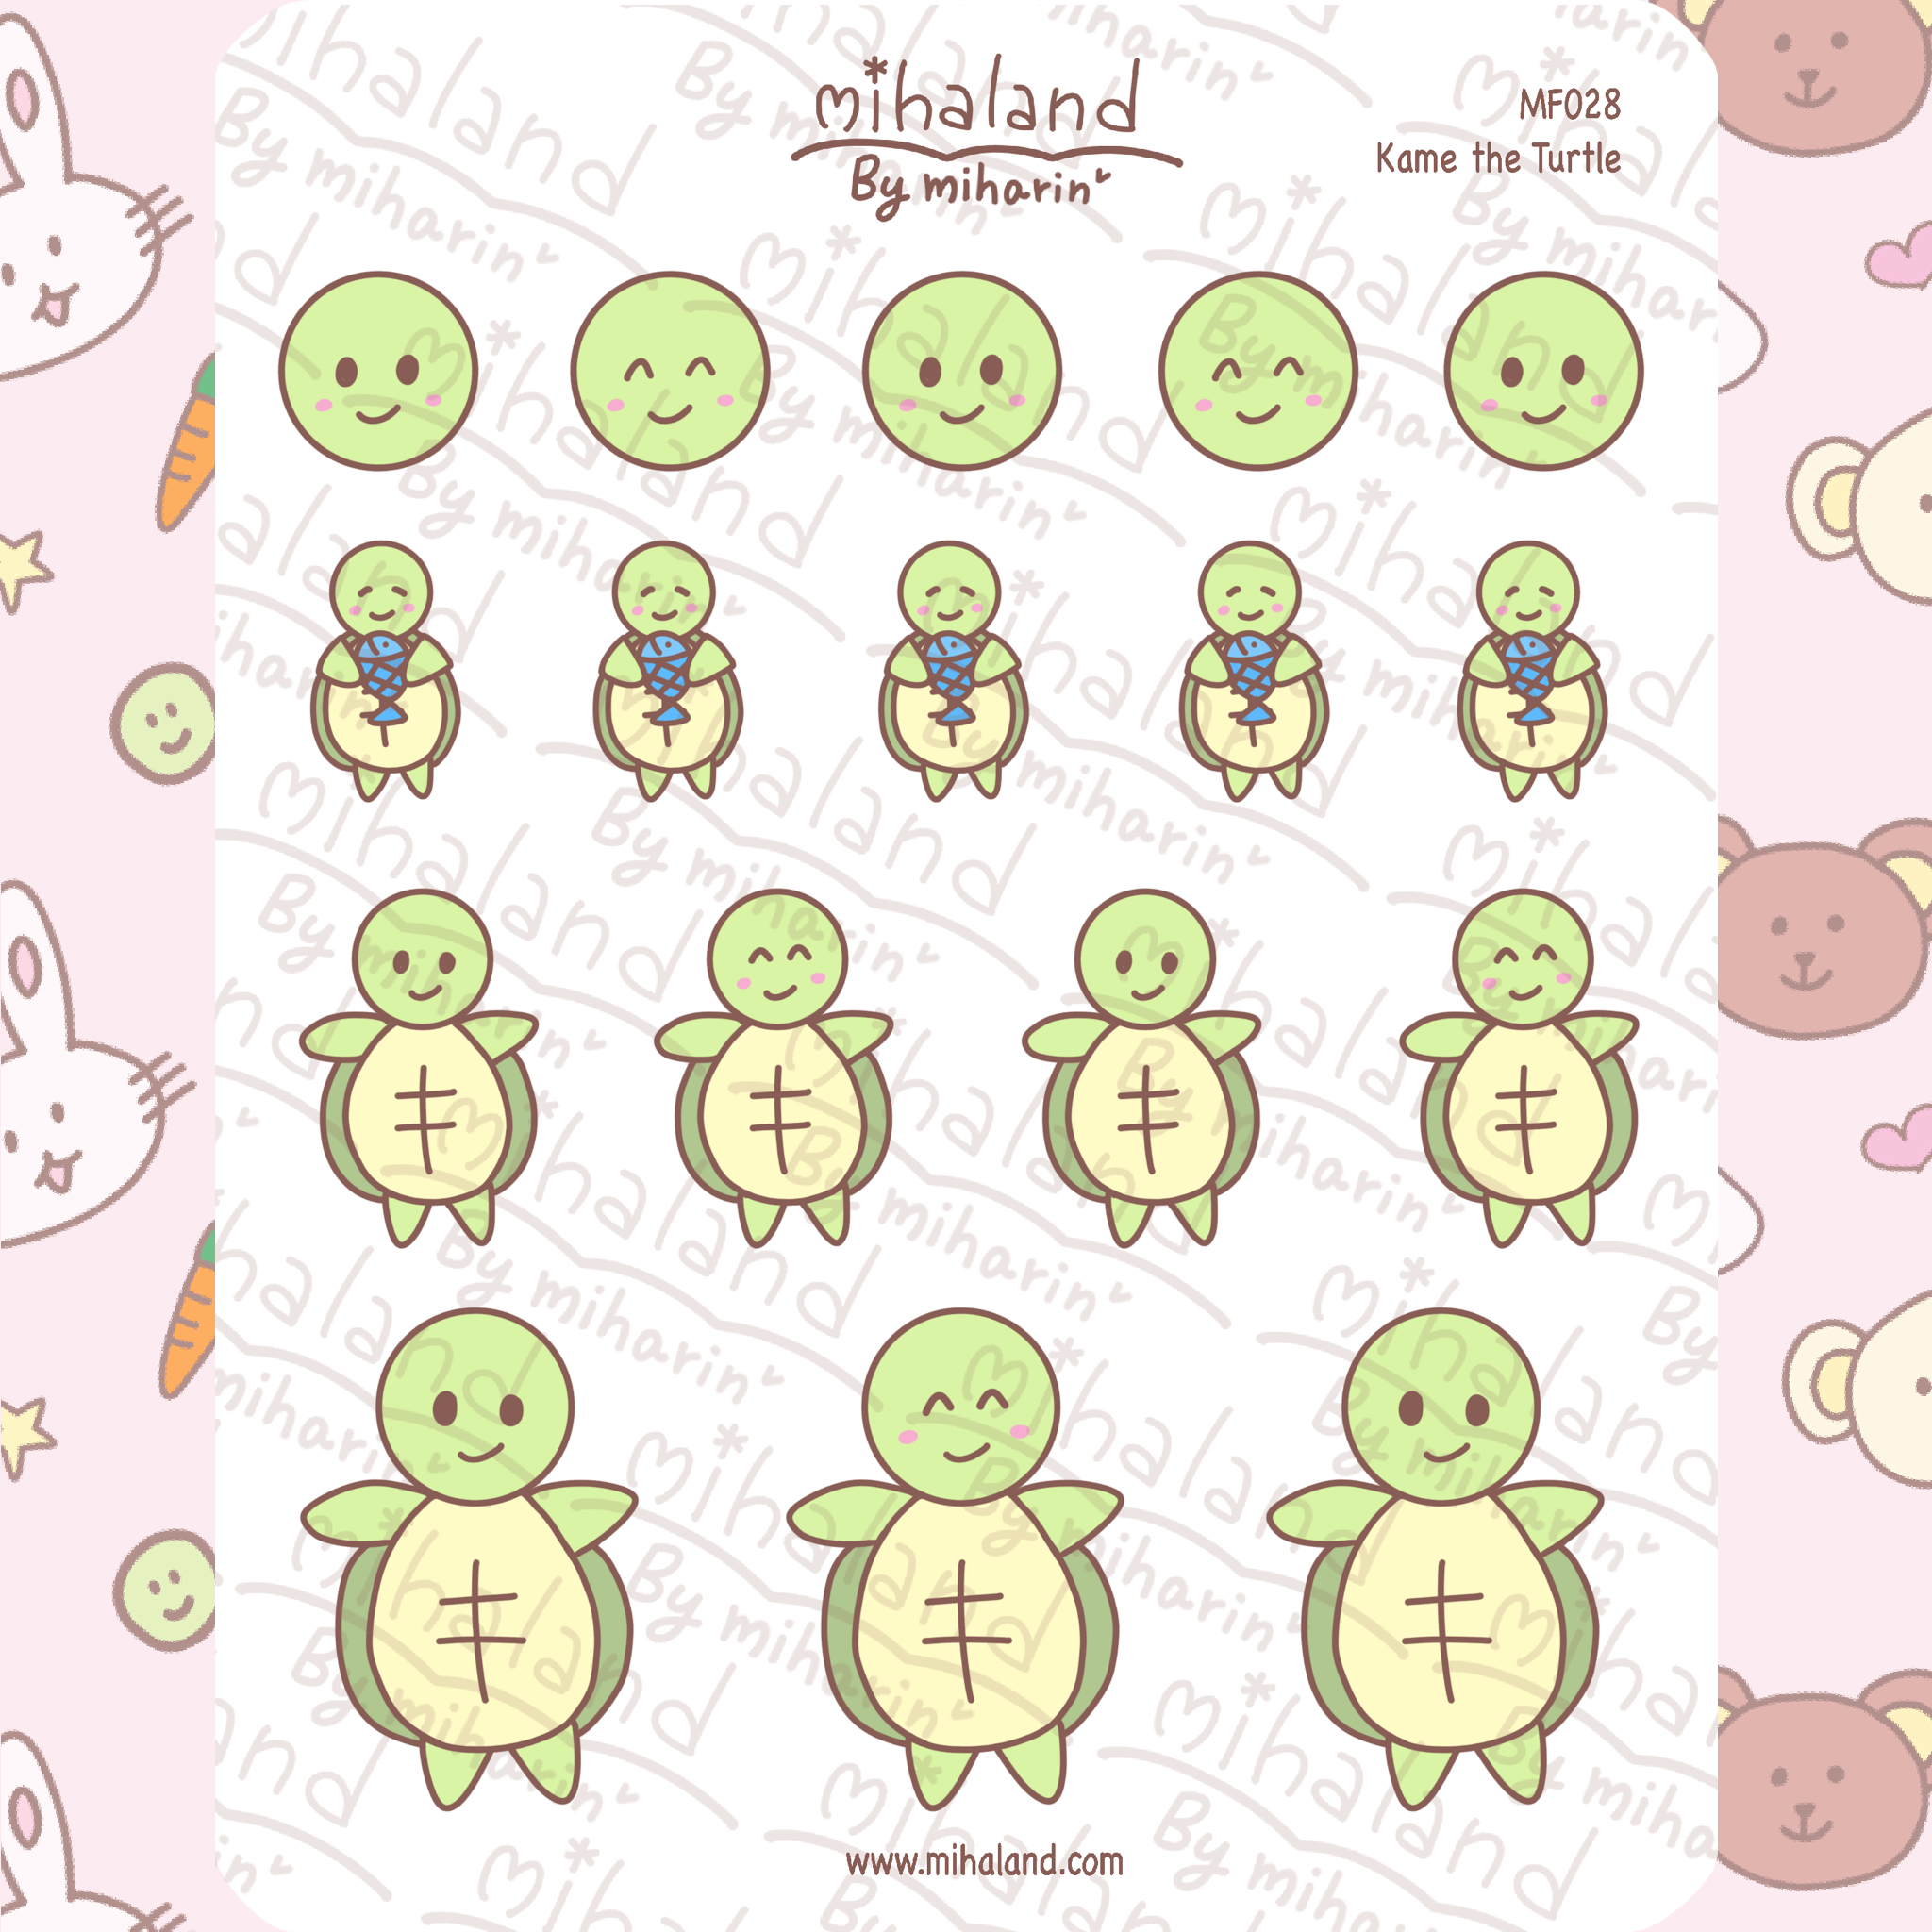 mihaland - Kame the Turtle Planner Stickers (MF028)